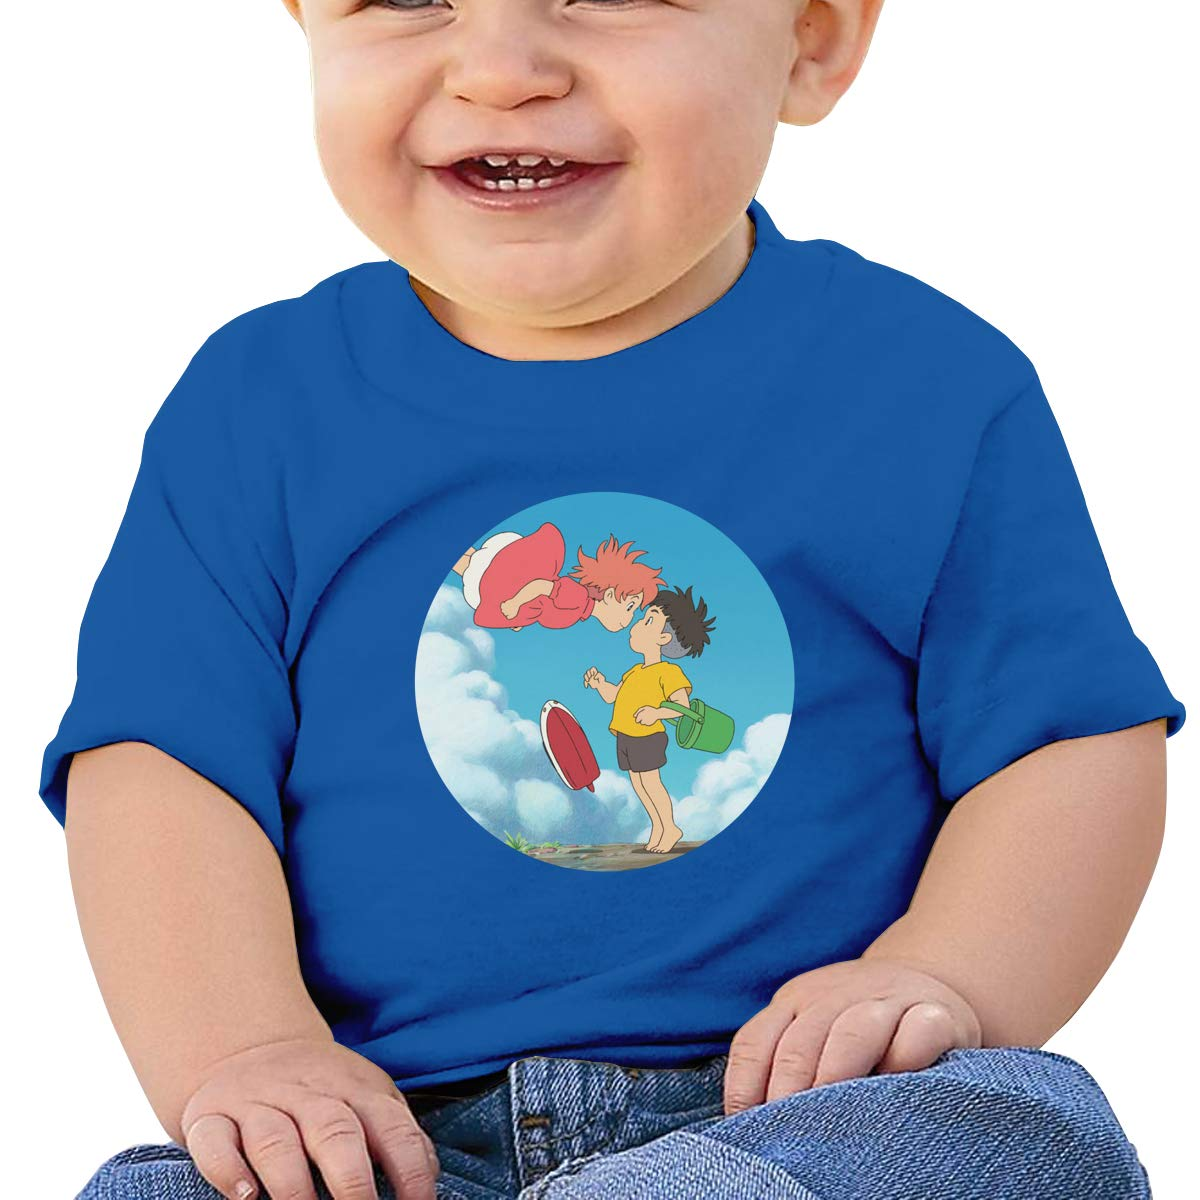 EVE JOHN Ghibi Tee Summer Tshirts for Toddler Black